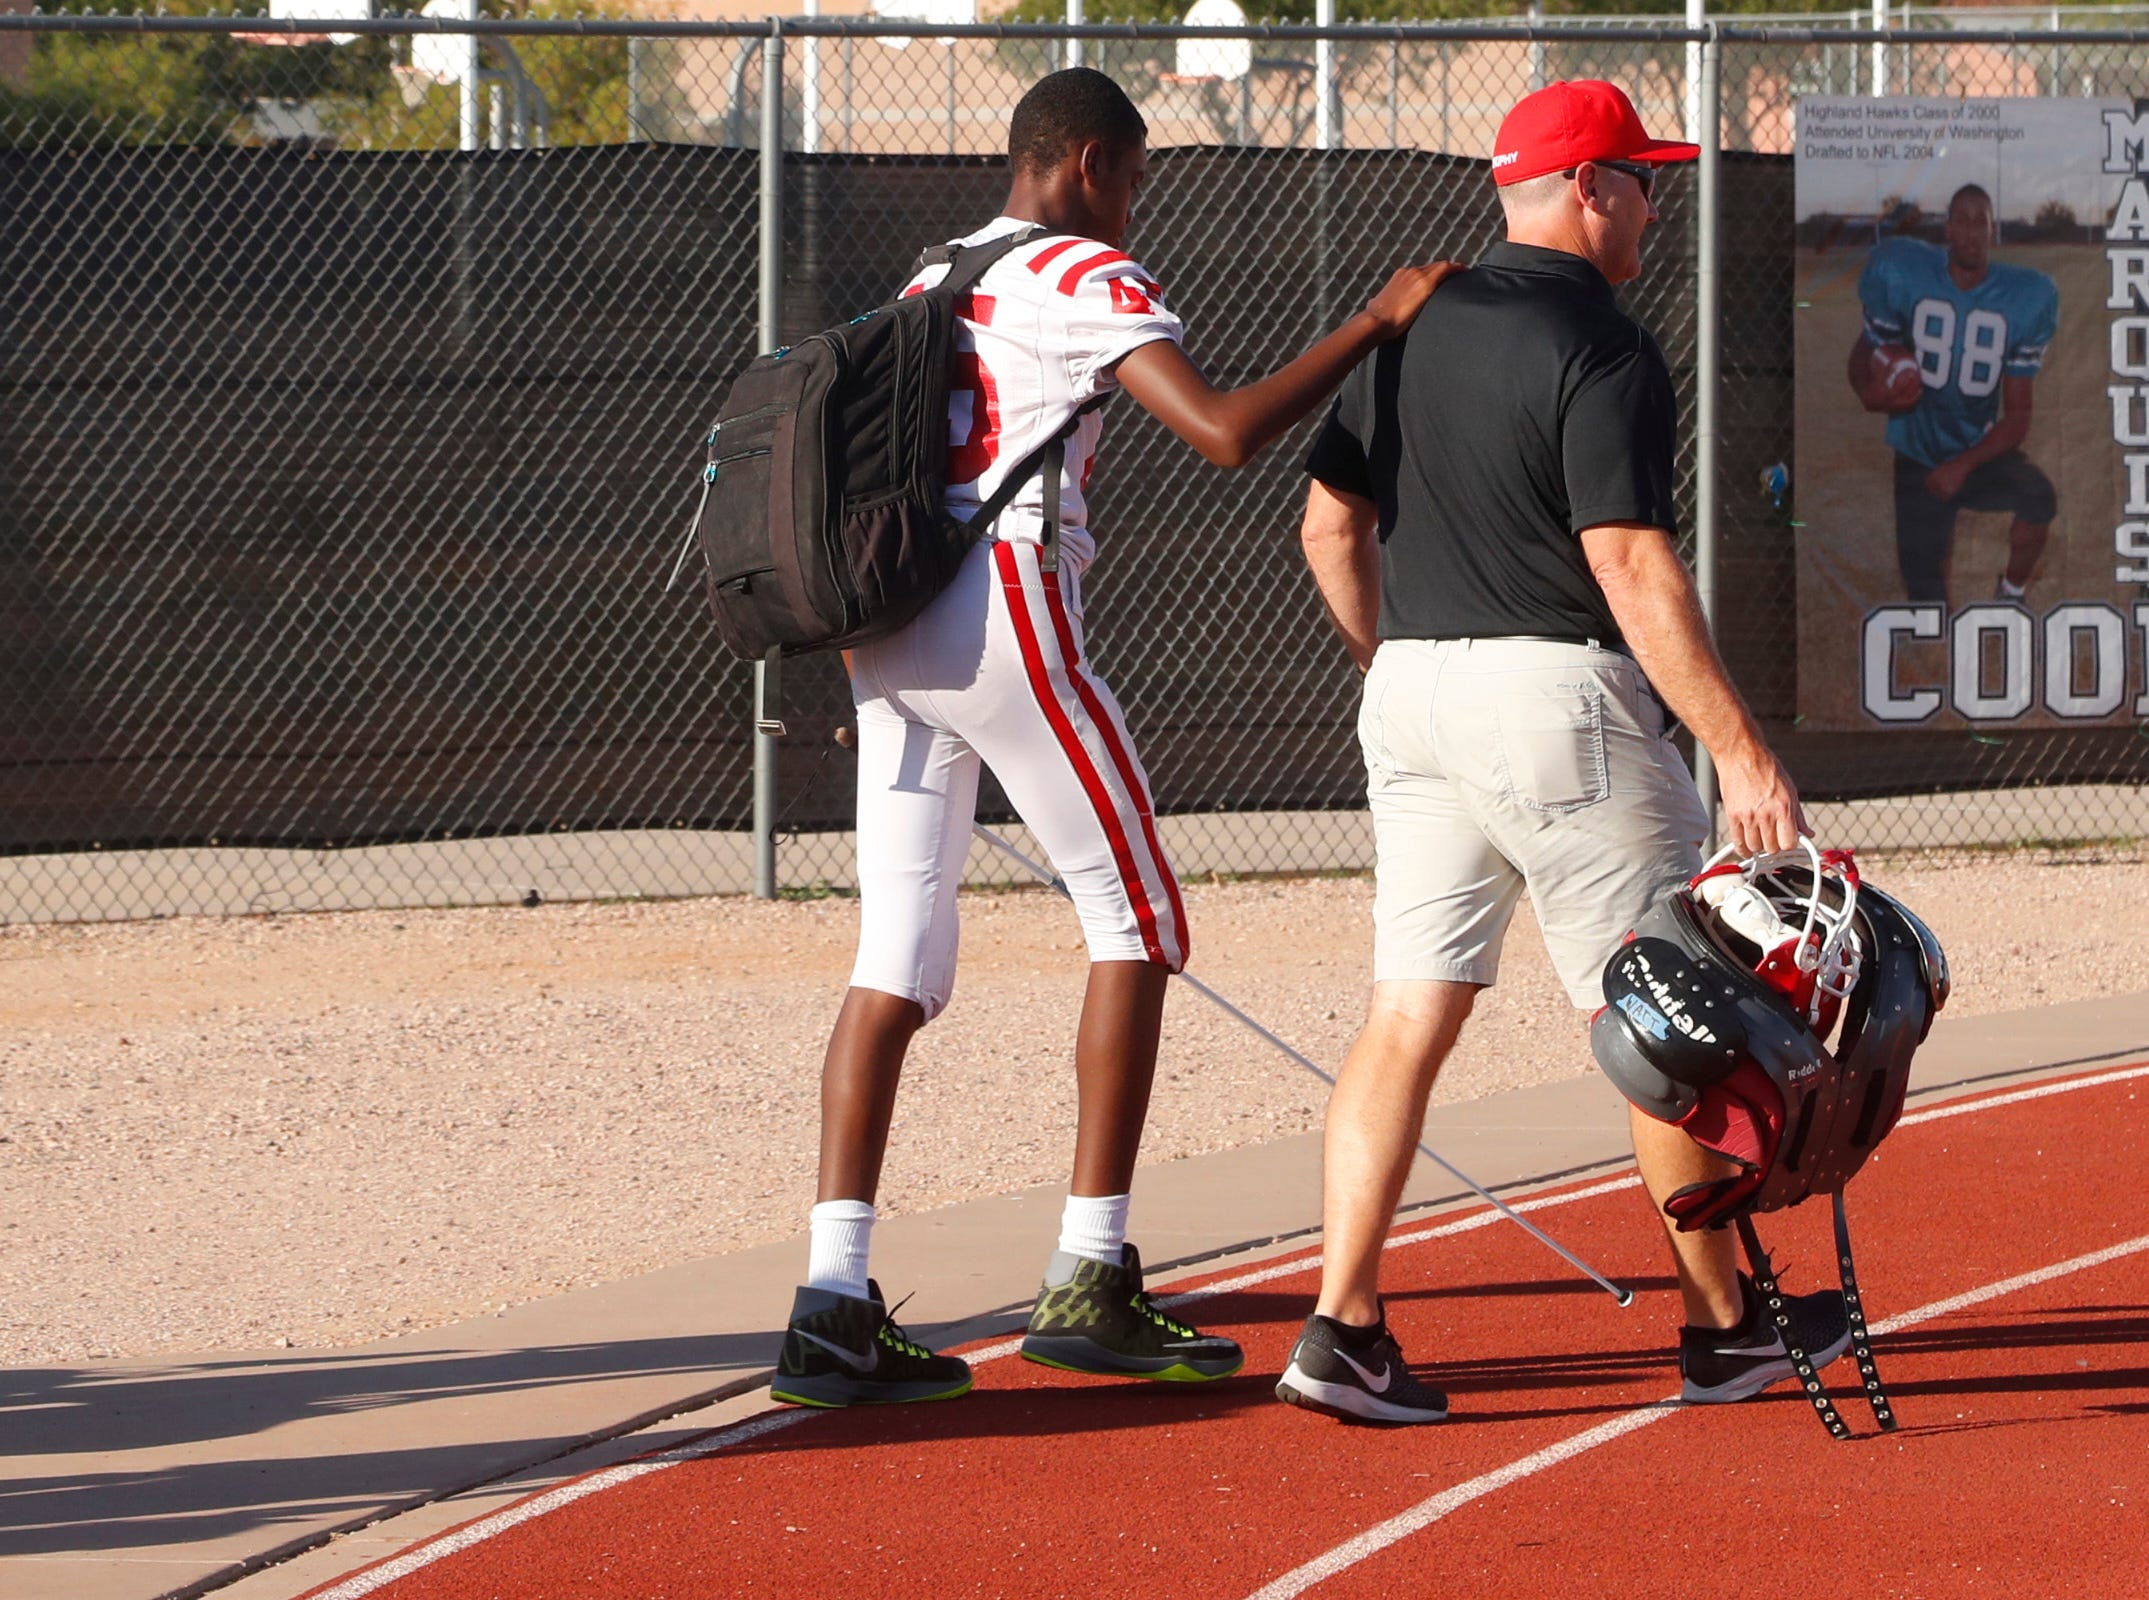 Brophy's Adonis Watt (45) walks in with coaches before a freshmen game against Highland at Highland High School in Gilbert, Ariz. on Aug. 30, 2018.